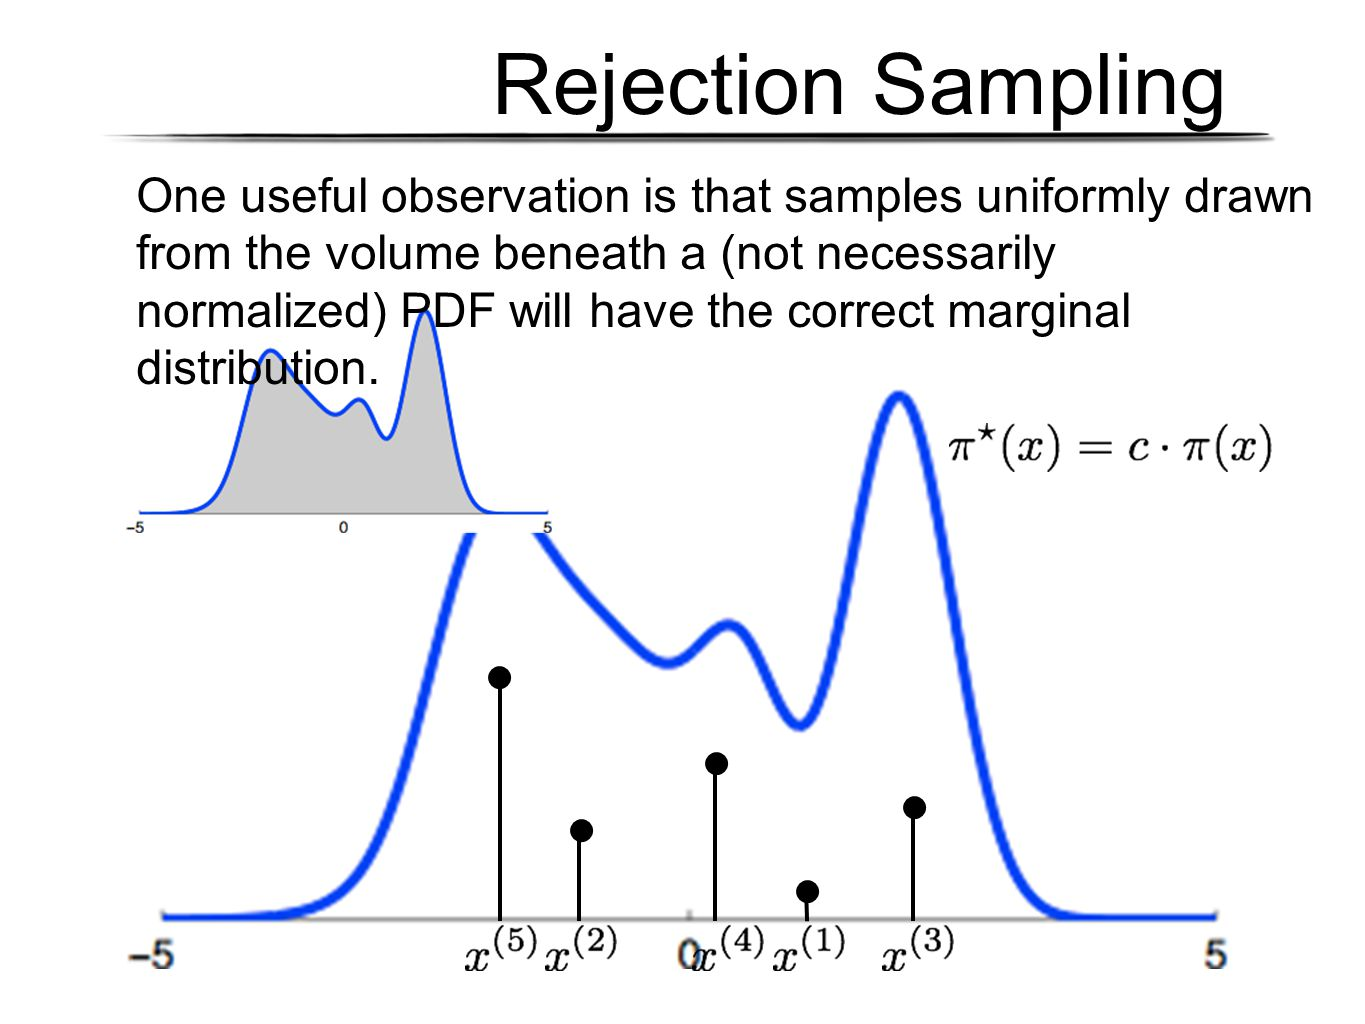 Rejection Sampling One useful observation is that samples uniformly drawn from the volume beneath a (not necessarily normalized) PDF will have the correct marginal distribution.